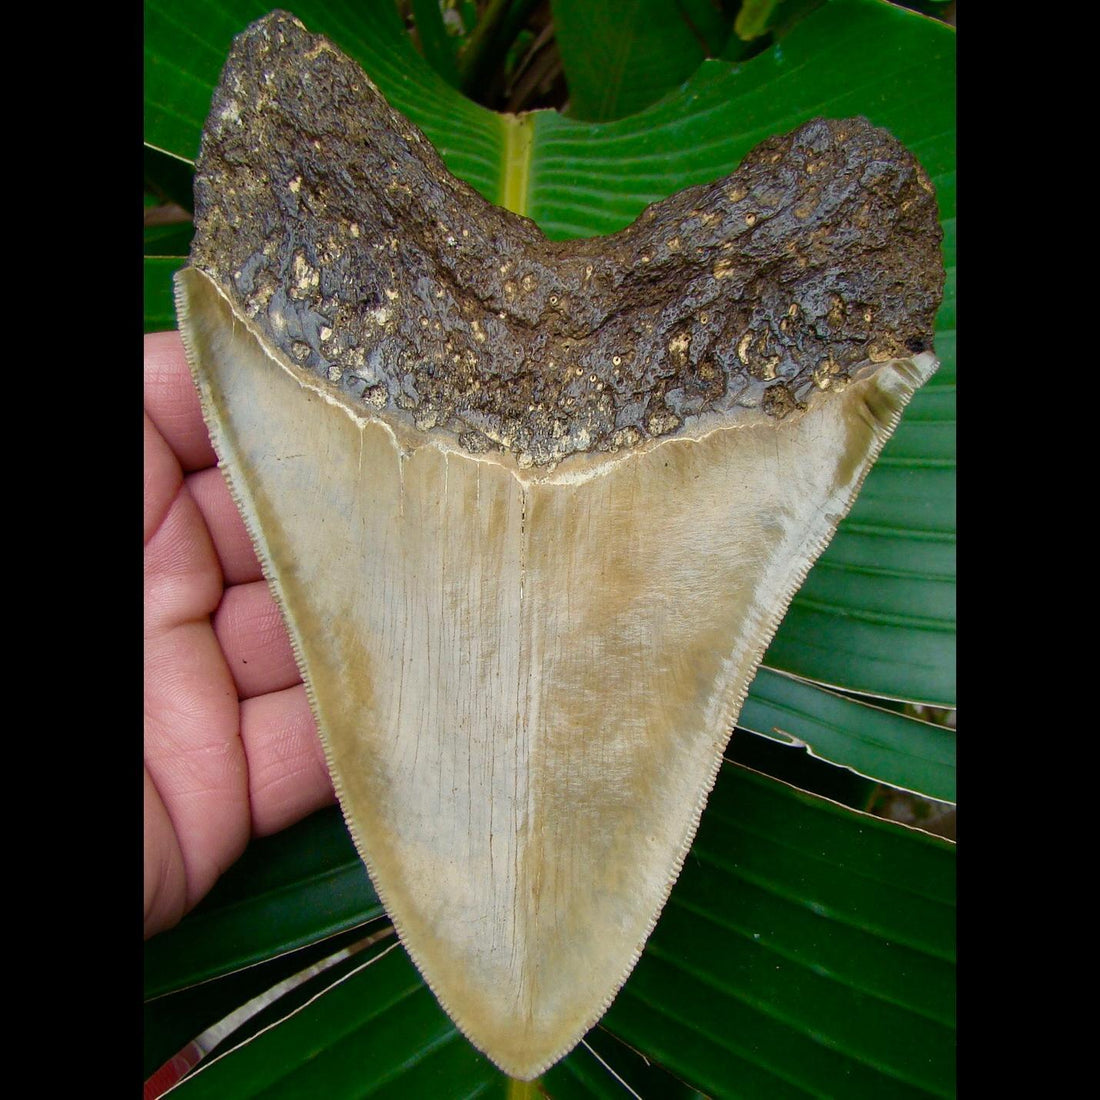 Megalodon Tooth 6 & 5/16 in. * SERRATED * North Carolina Megalodon Shark Tooth